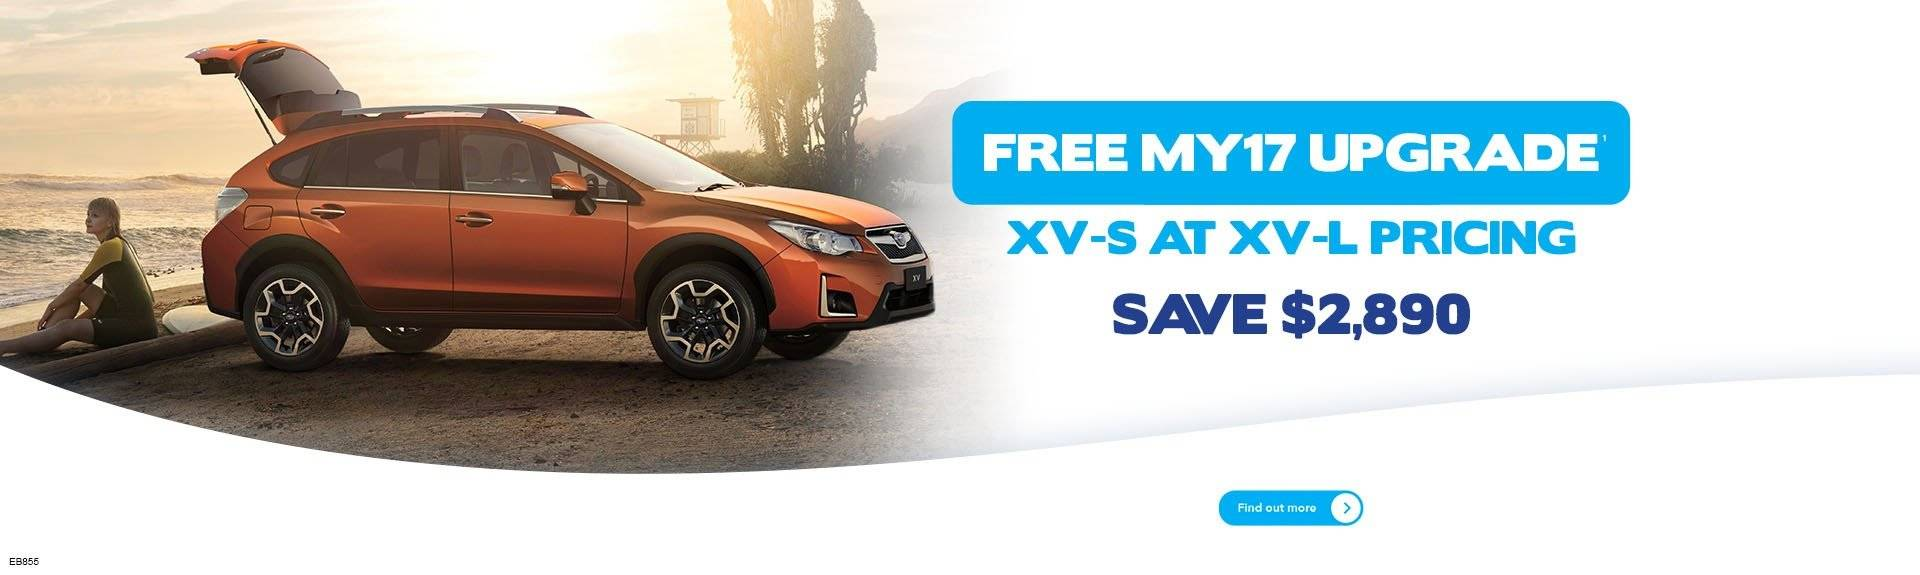 Subaru XV MY17 Upgrade Offer